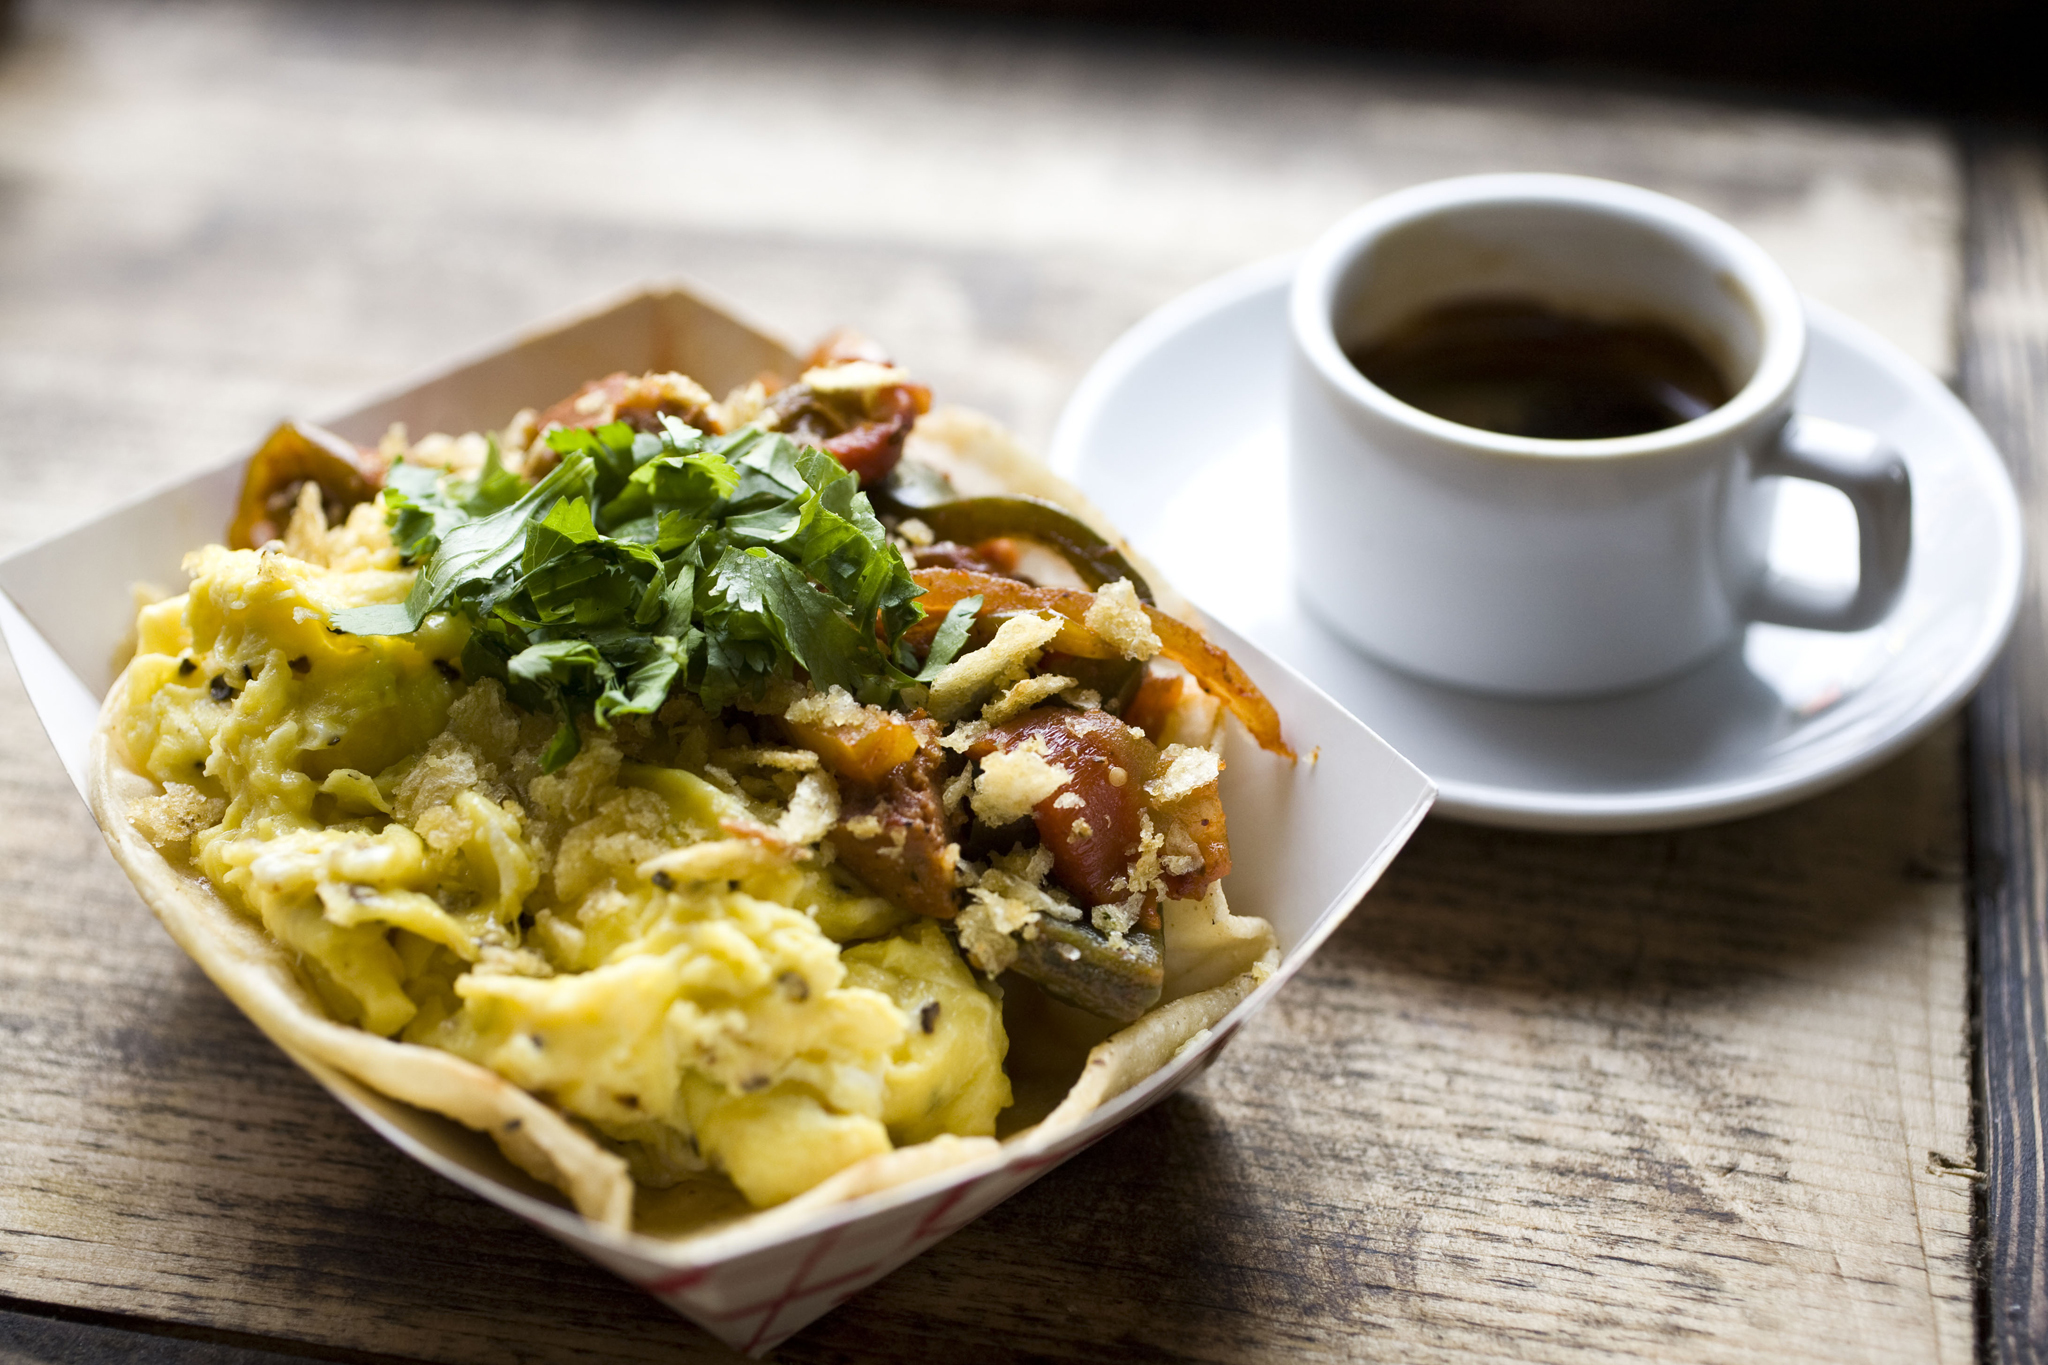 Have a great breakfast taco at Whirlybird